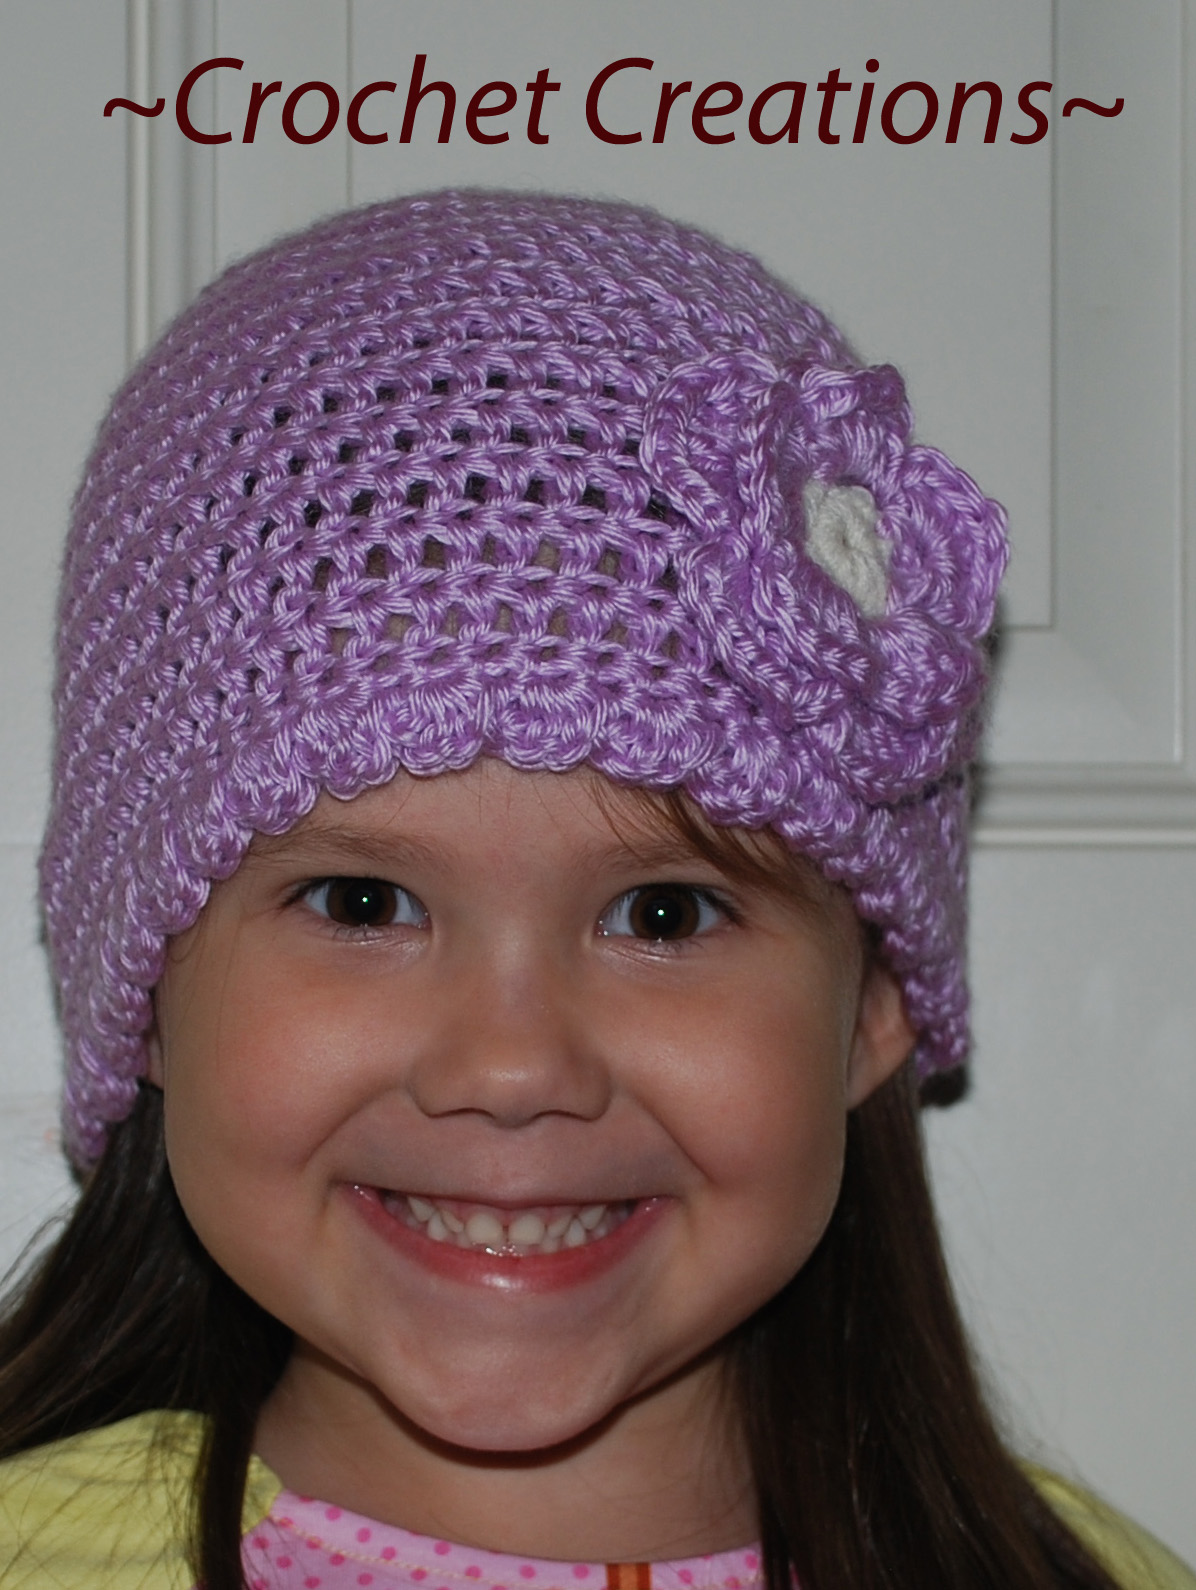 Free crochet patterns childrens hats manet for crochet for beginners free crochet patterns childrens hats bankloansurffo Gallery